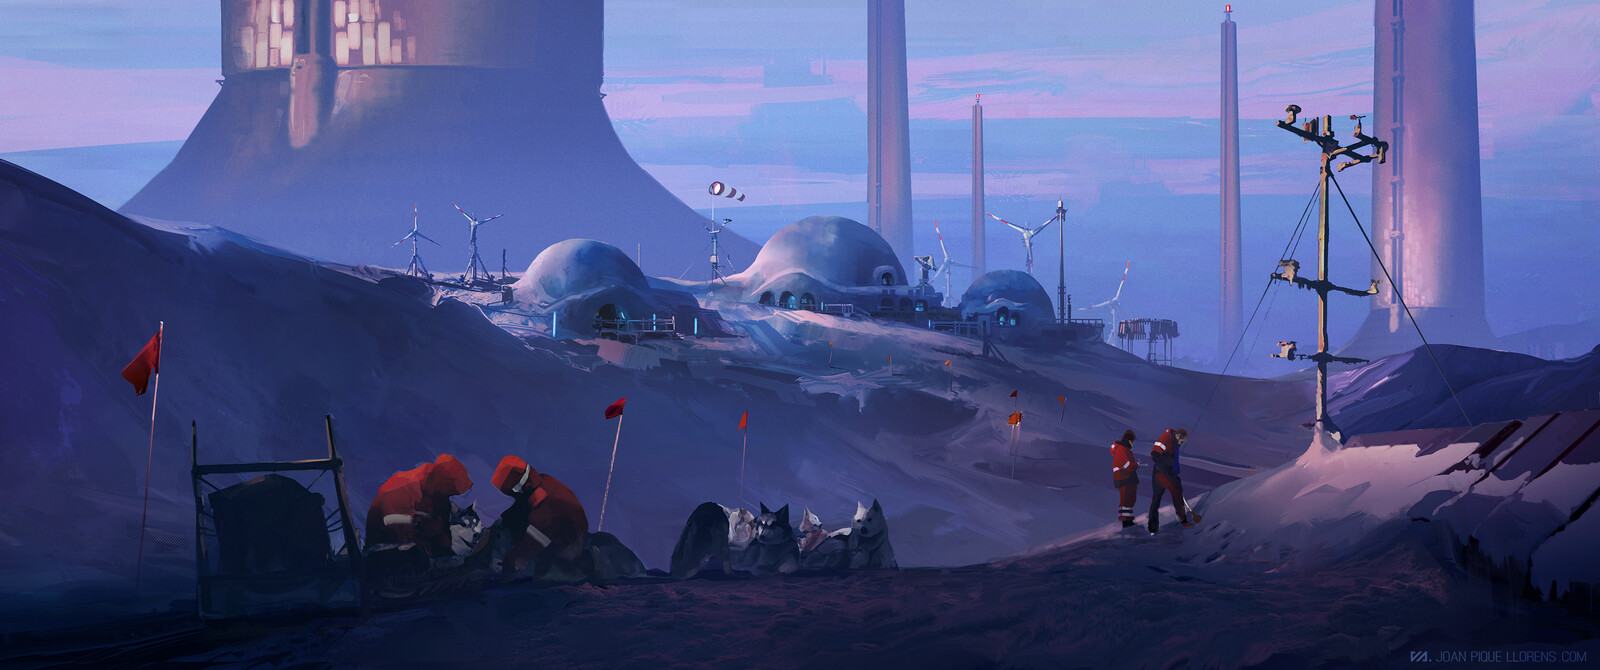 Antartic outpost